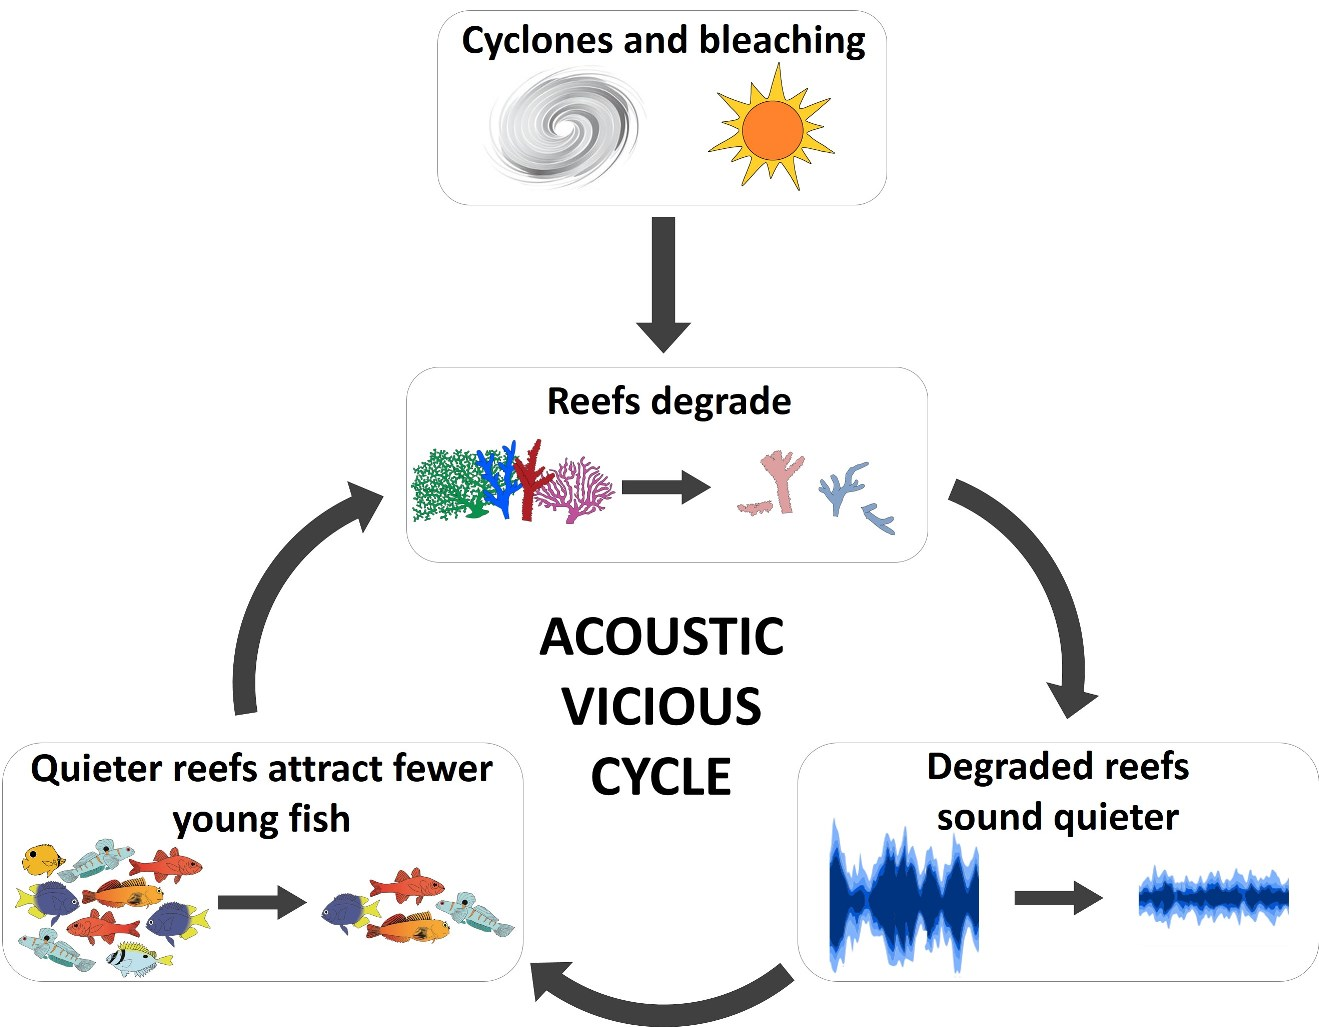 This schematic outlines how degradation caused by bleaching and cyclones changes the soundscape of a reef and, in turn, its functionality. A quieter, simpler soundscape makes reefs less attractive to young fishes, potentially reducing the populations of important algae-grazing species. Fewer fish and reduced grazing may exacerbate degradation, preventing recovery.